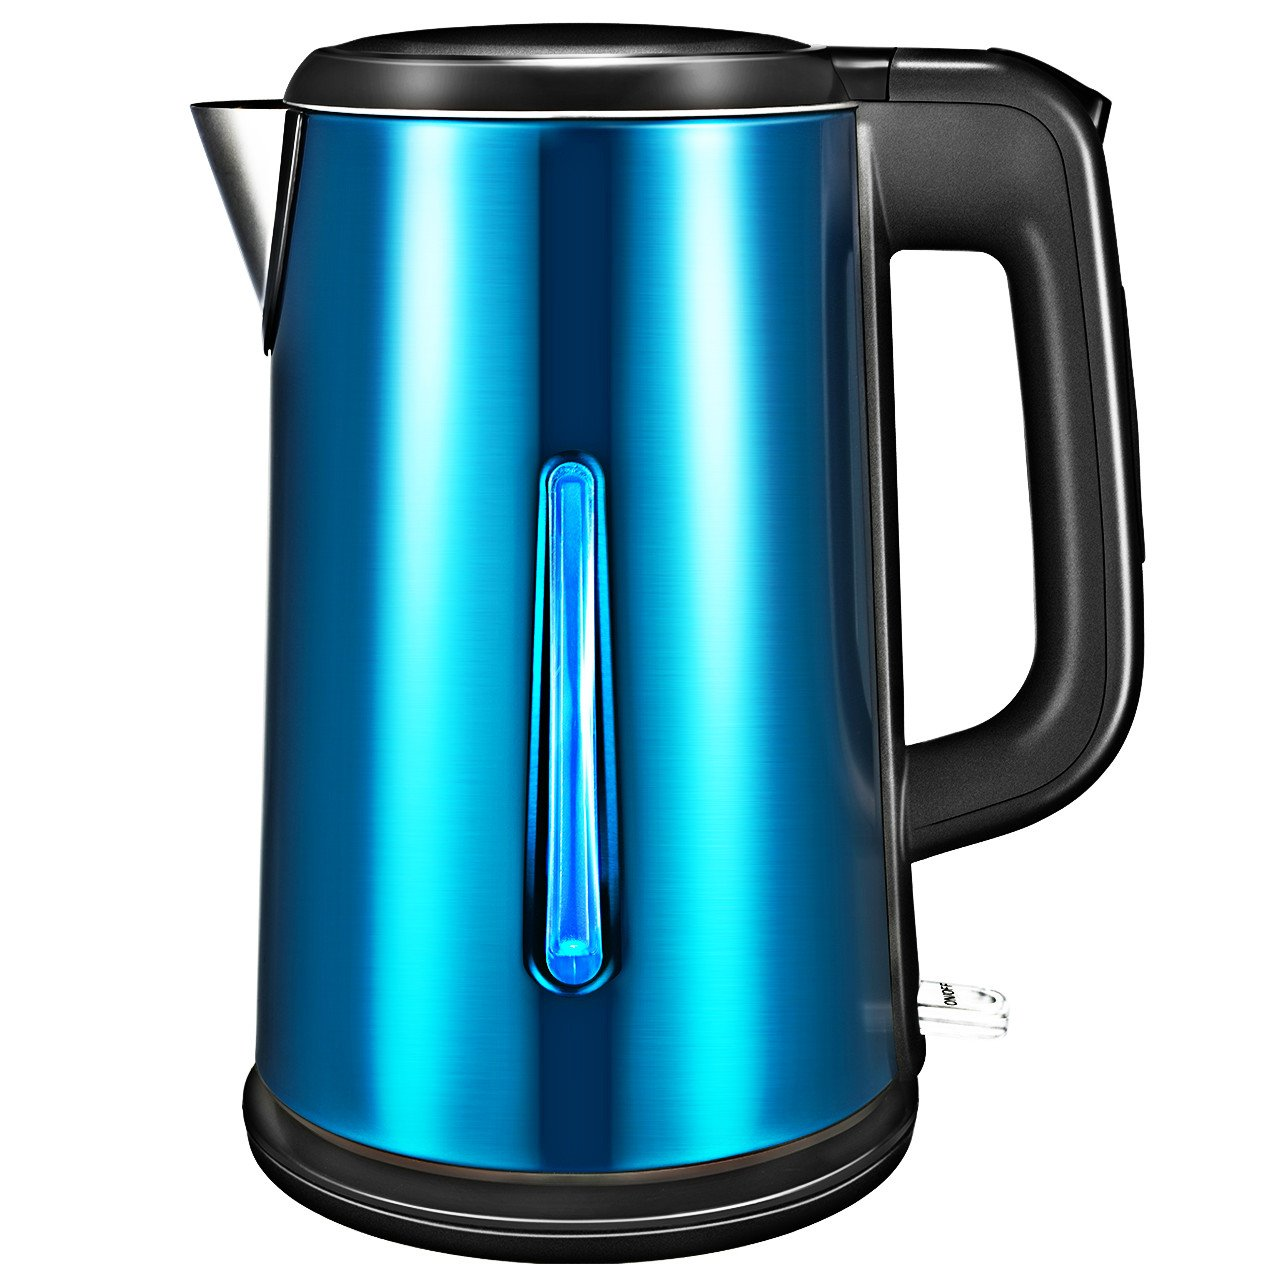 Electric Kettle, ElleSye 1.8 Liter Stainless Steel Kettle Fast Boiling Double-Walled Cordless Hot Water Kettle with Auto Shutoff, Boil Dry Protection, Blue LED Illumination